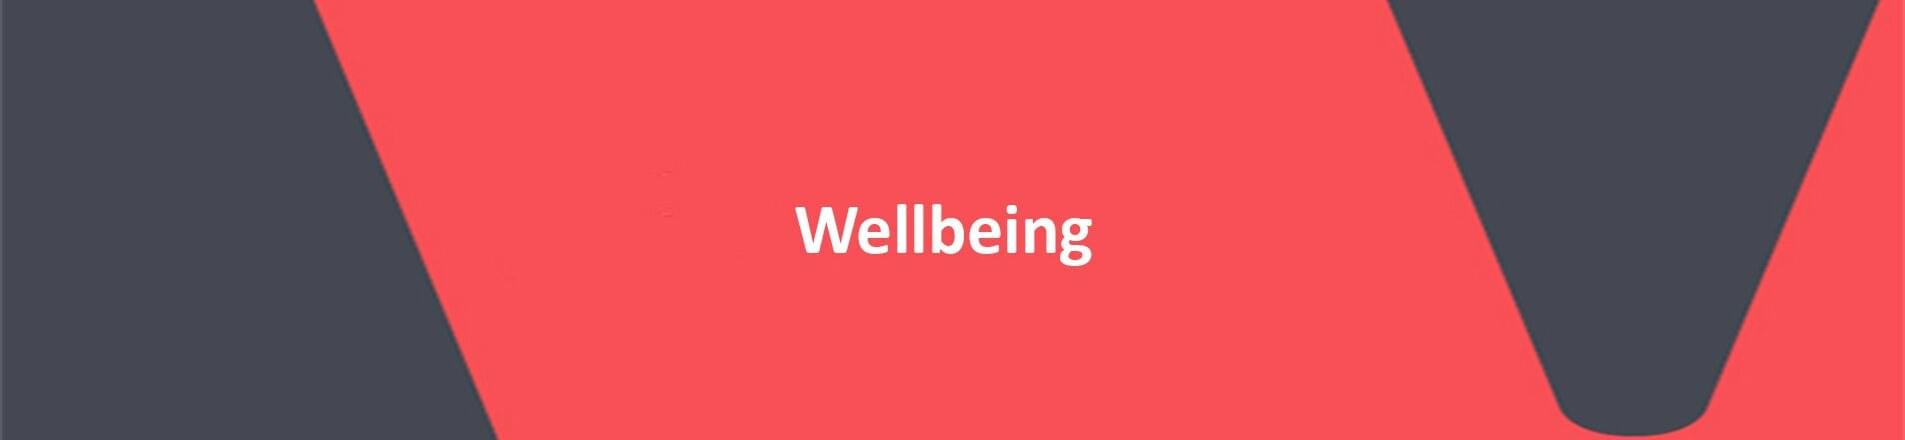 Red background with white text overlaid spelling Wellbeing.